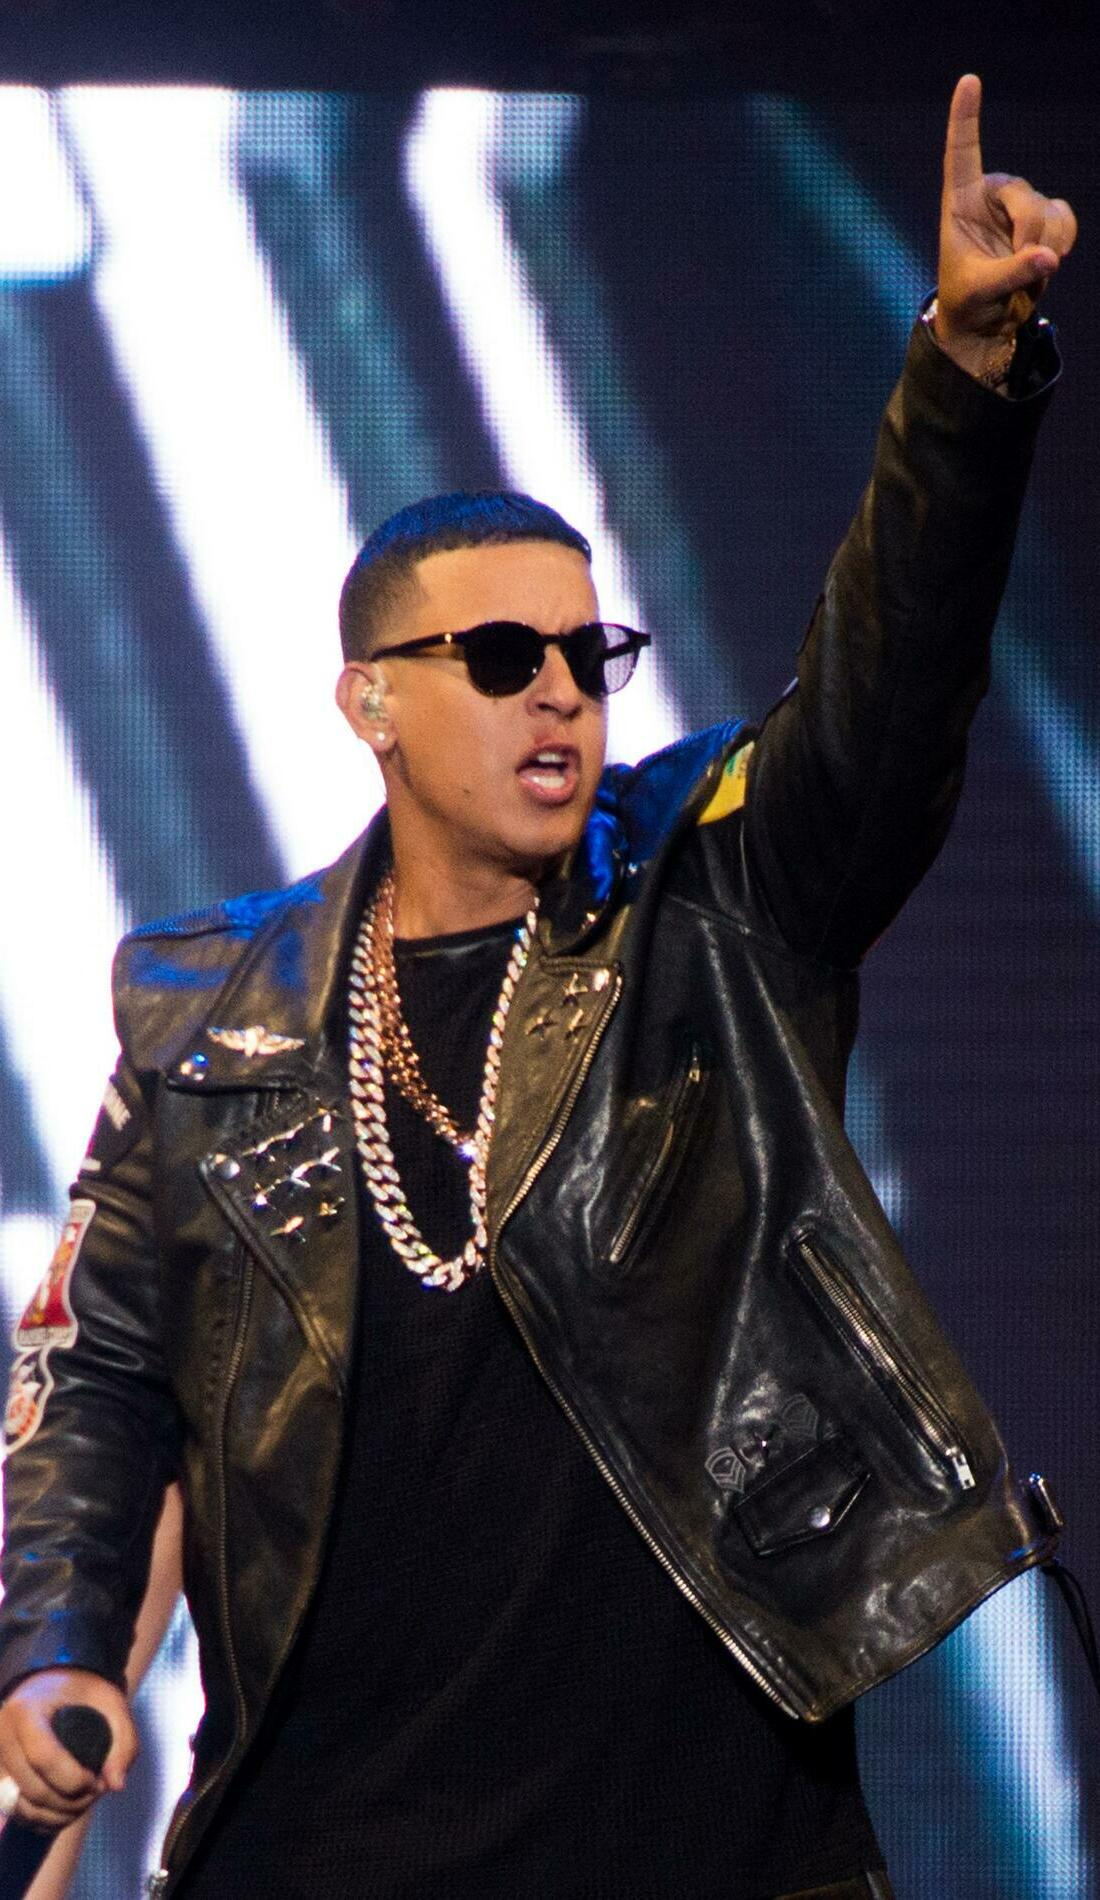 A Daddy Yankee live event